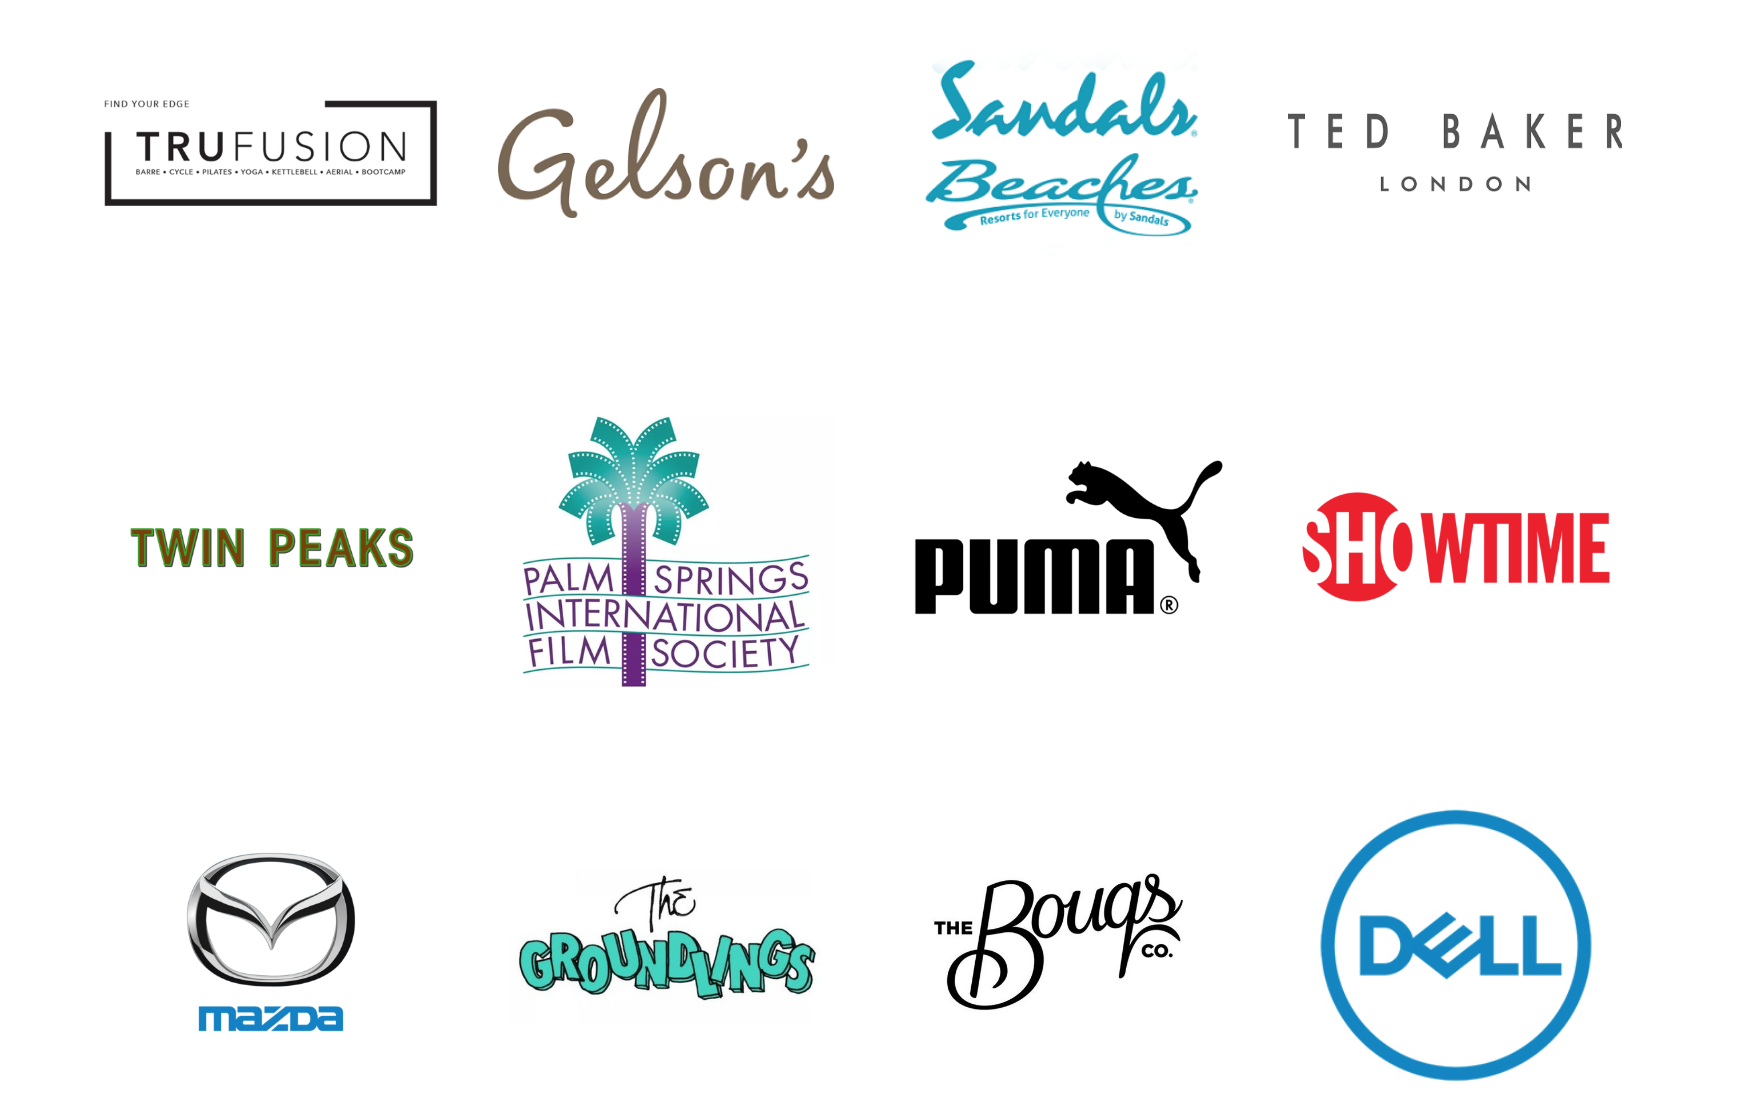 We know how to launch new brands, and to reenergize well-known ones.